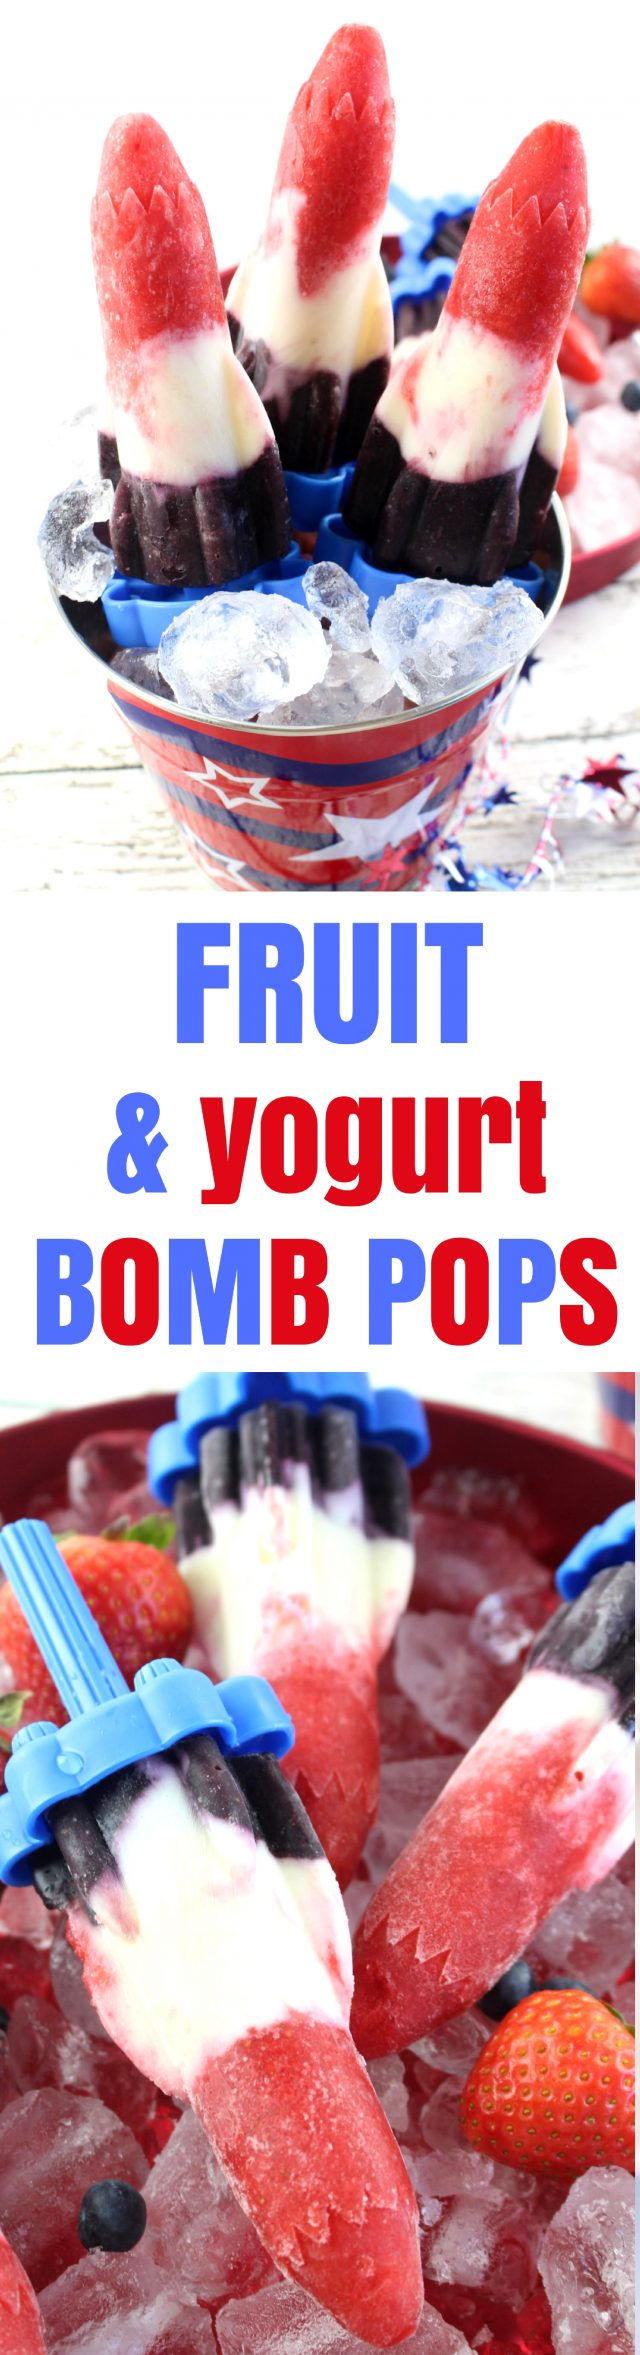 July 4th Red, White & Blue Fruit and Yogurt Bomb Pops Recipe Let's cool off this summer by starting off with these delicious red, white, and blue Patriotic Fruit and Yogurt Bomb Pops that are just perfect for a July 4th popsicle recipe, too! Filled with fruit and yogurt, these bomb pops are also easy on the waistline and OH SO refreshing on a hot day.